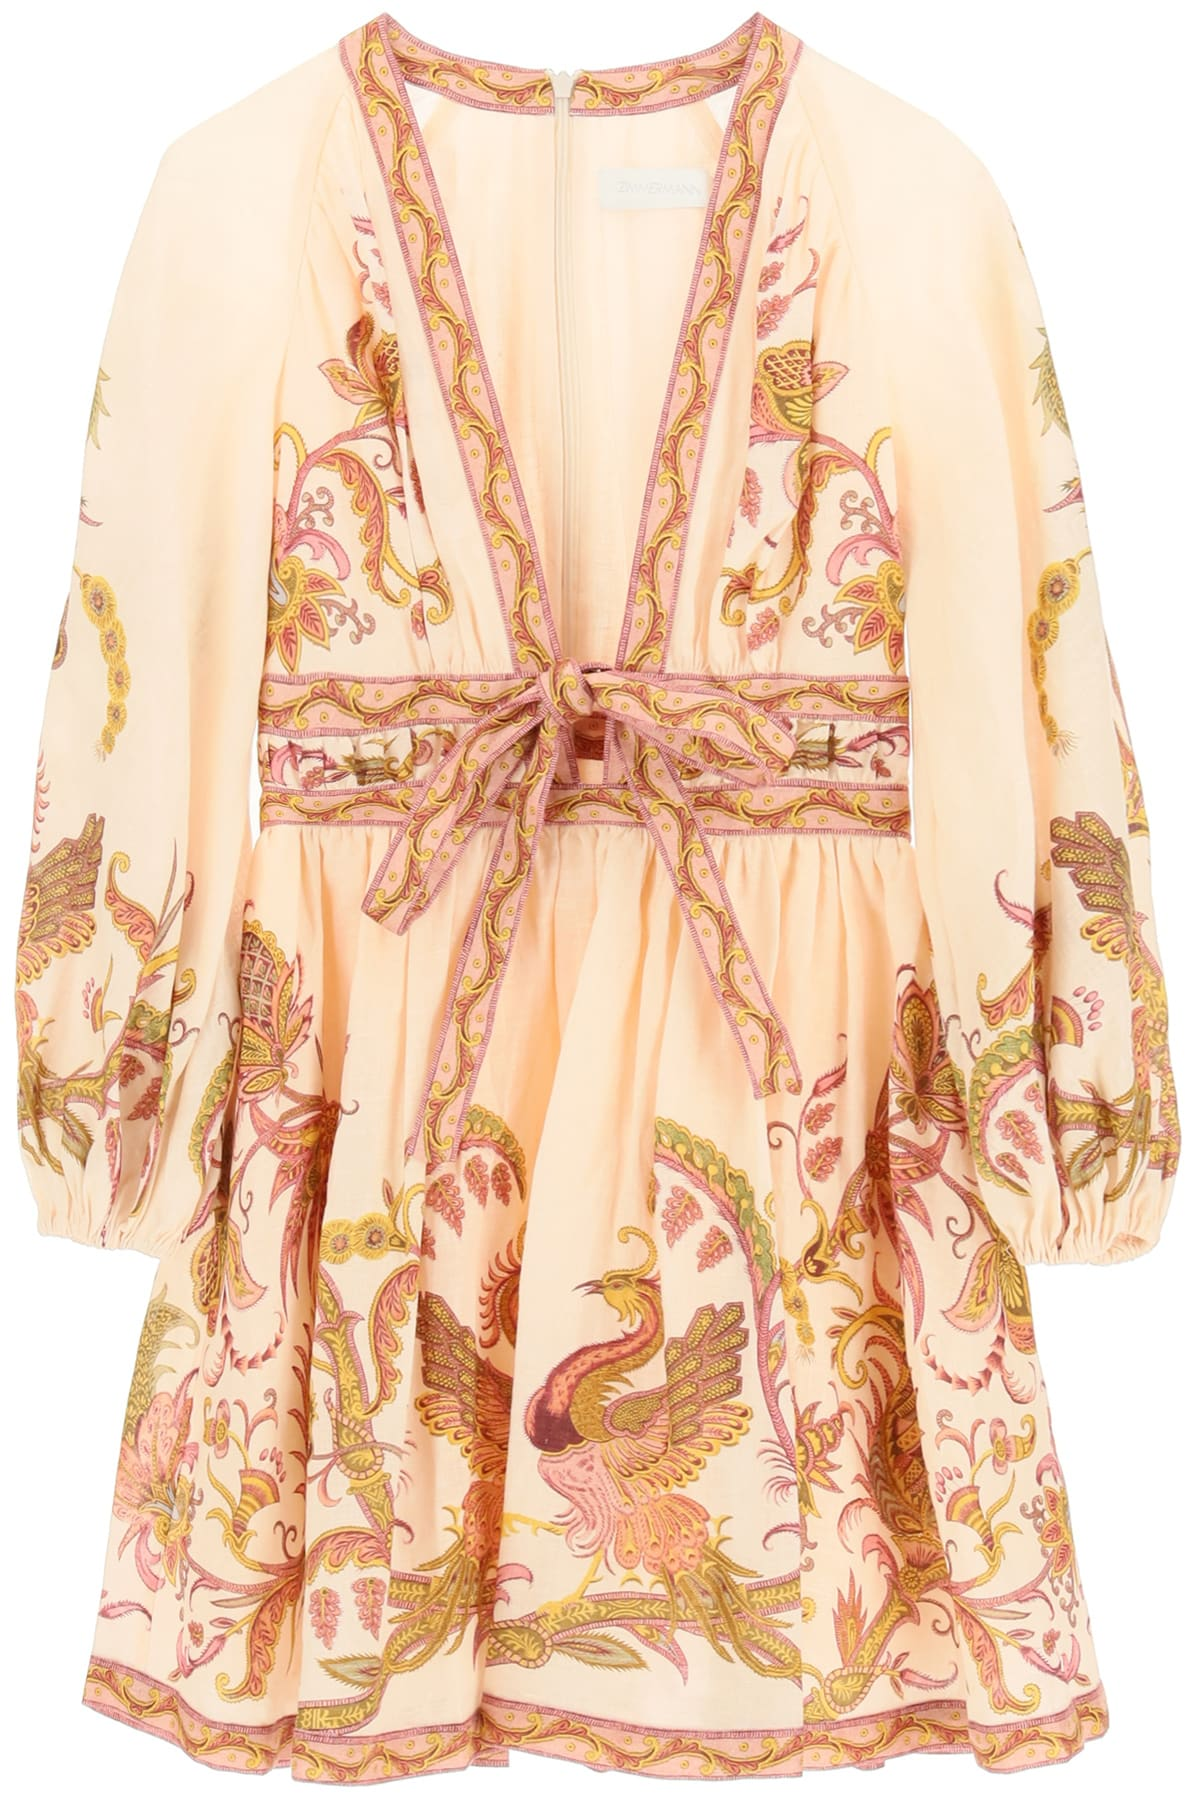 Buy Zimmermann Bird Floral Print Mini Dress With Bow online, shop Zimmermann with free shipping